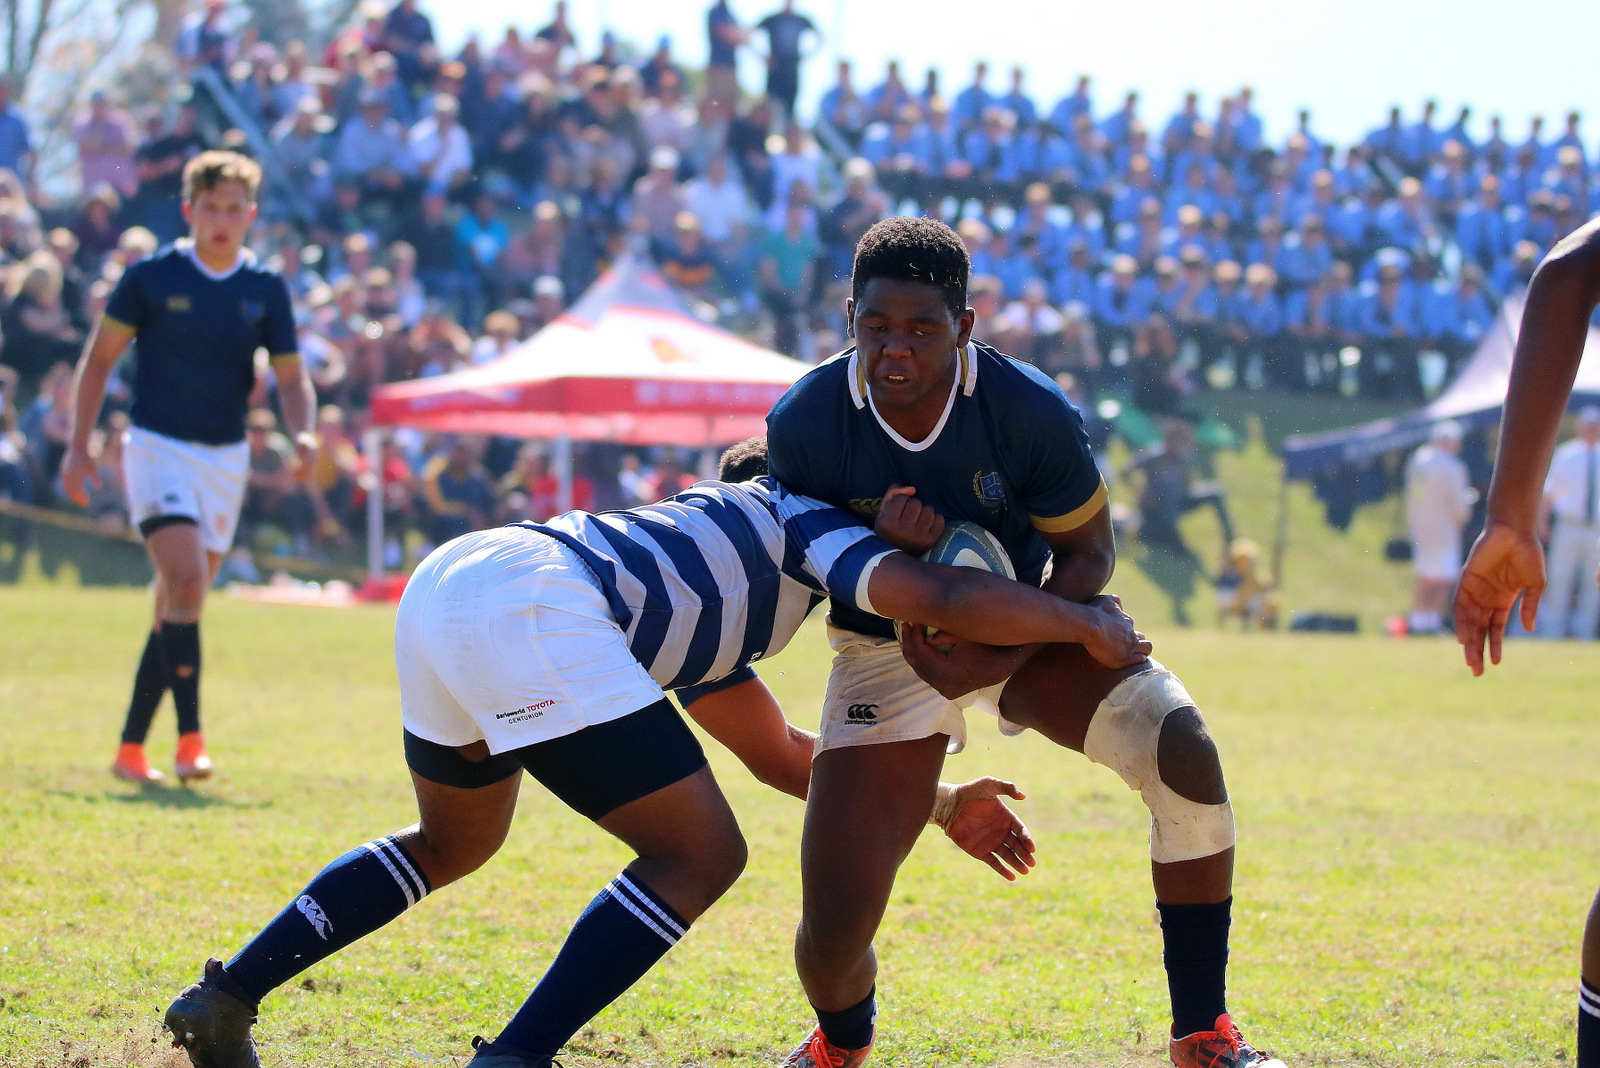 st charles rugby player braising for a tackle